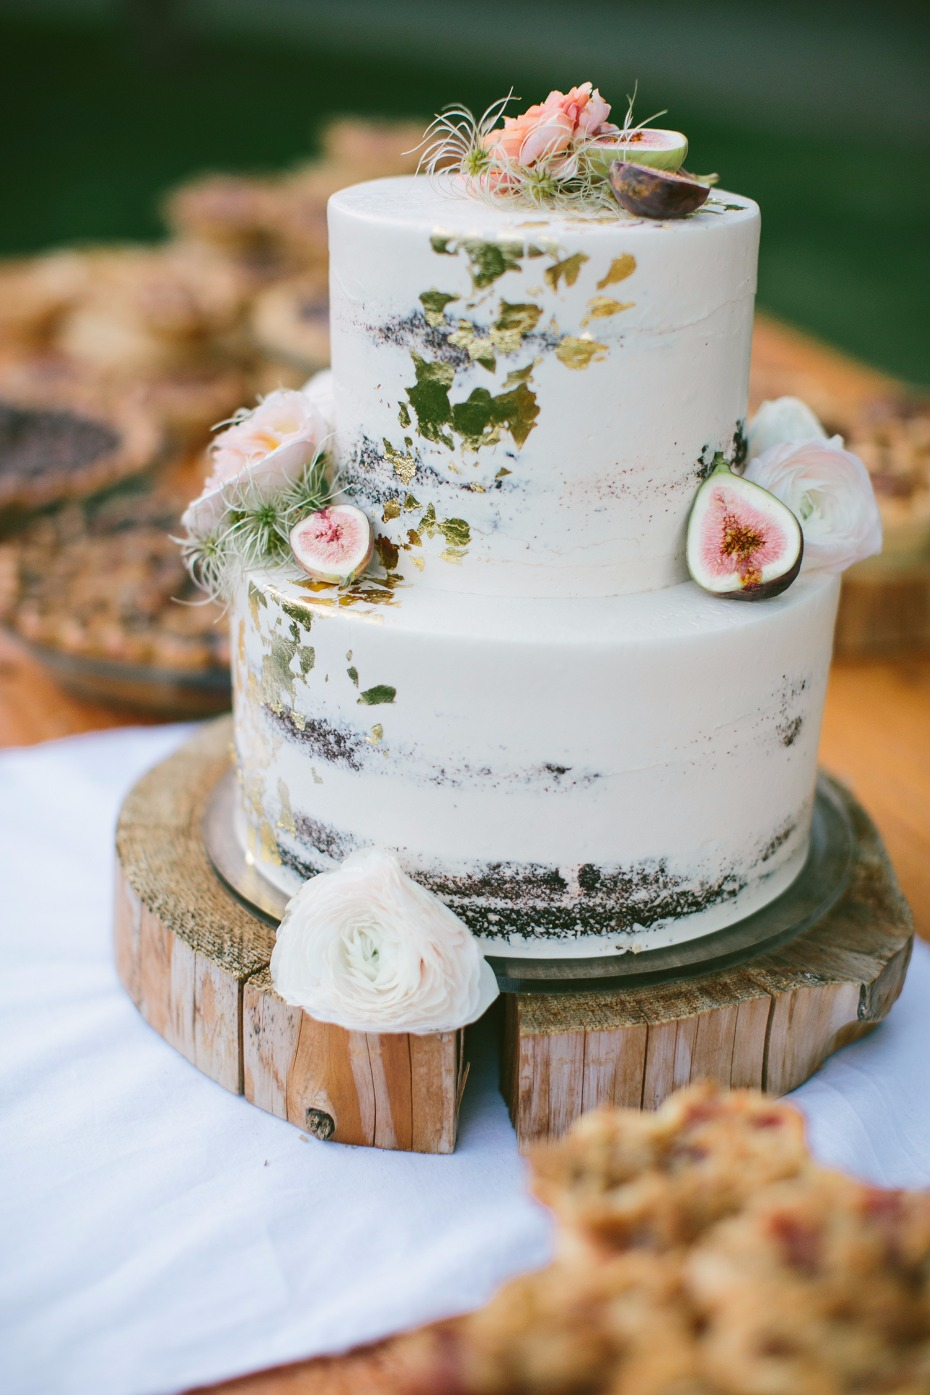 Naked cake with gold foil and figs